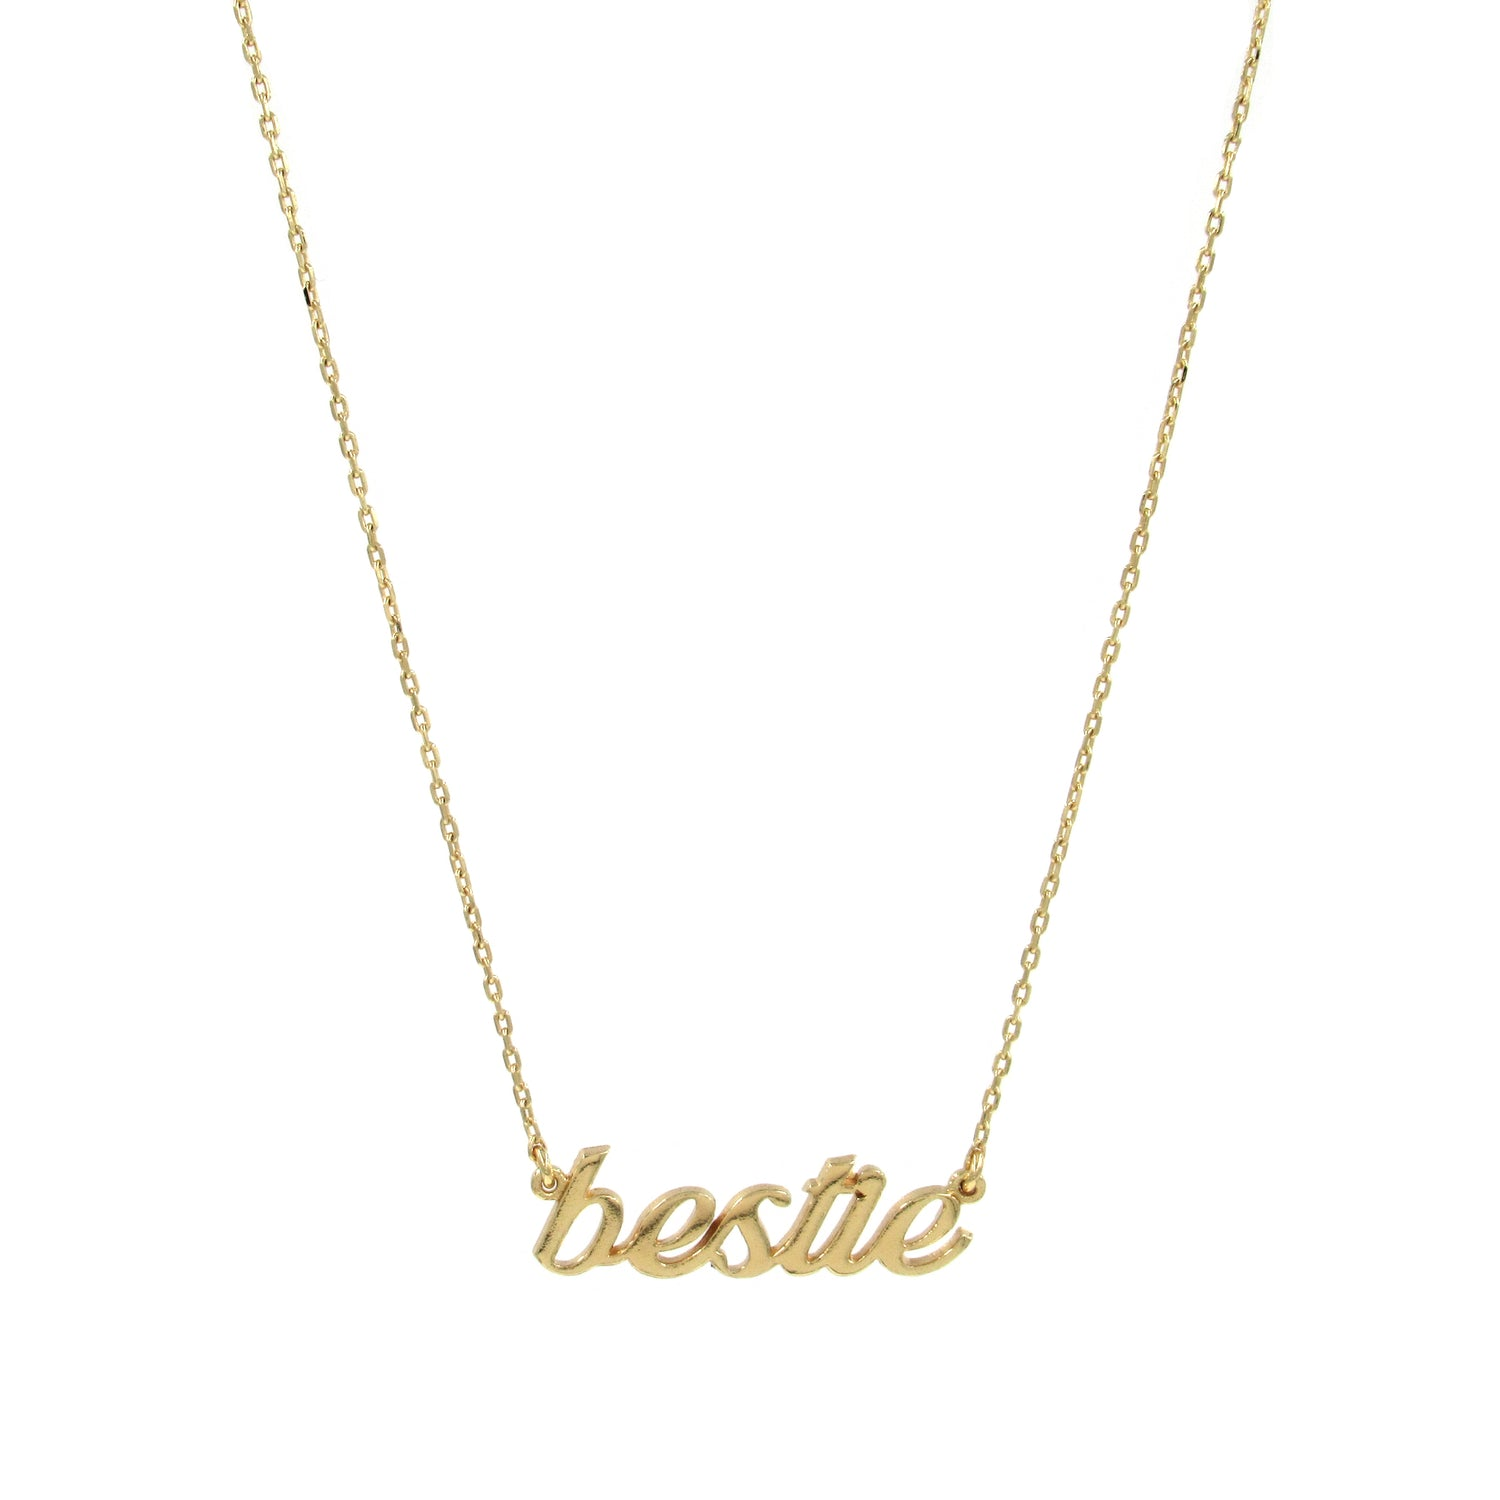 Bestie Necklace - Bing Bang Jewelry NYC